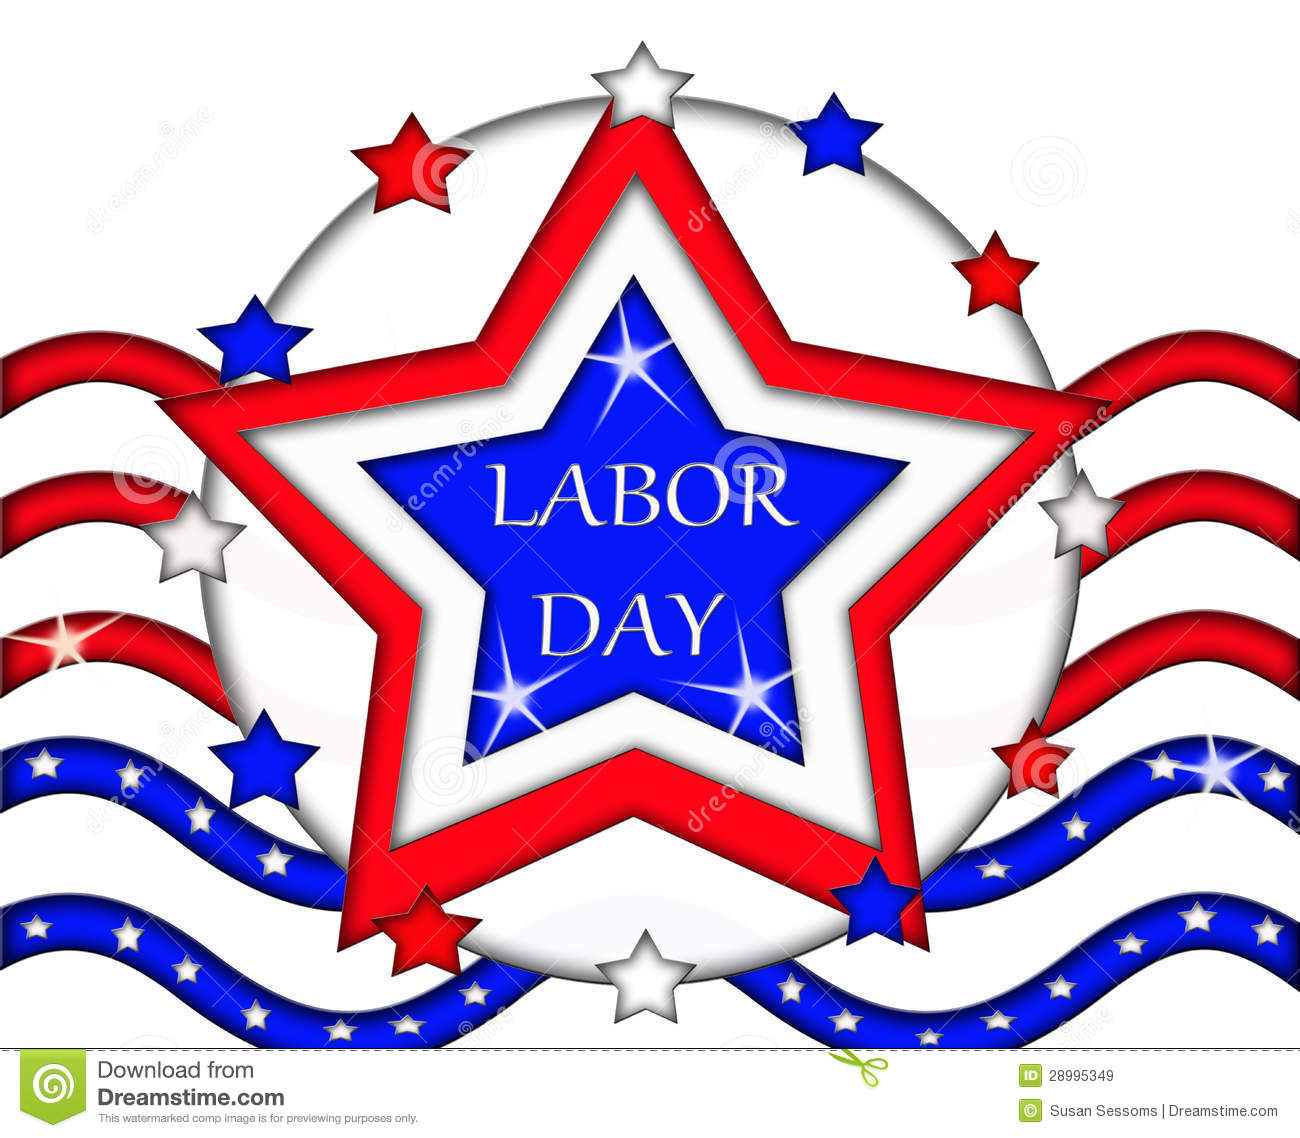 Labor Day Clipart - Clipart Kid